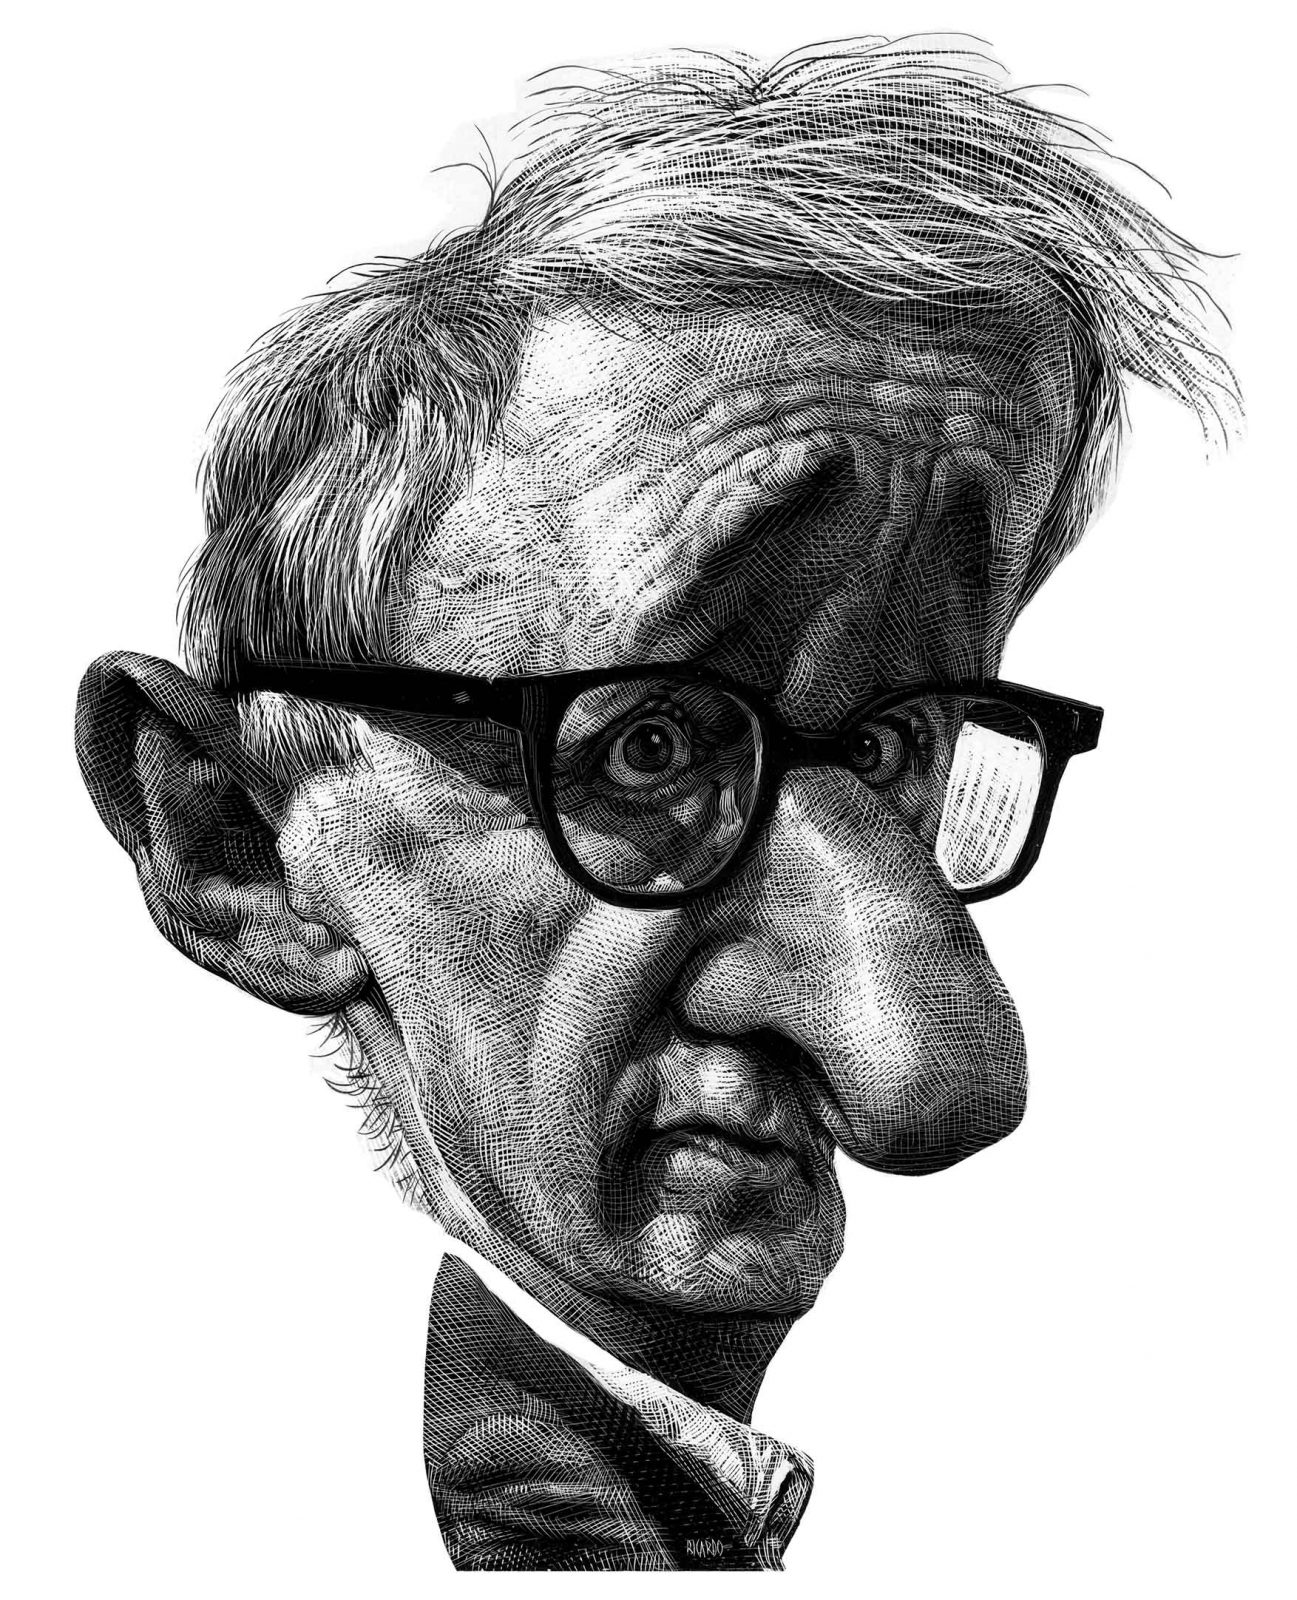 Richard Solomon - Ricardo-Martinez-218-M-Woody-Allen